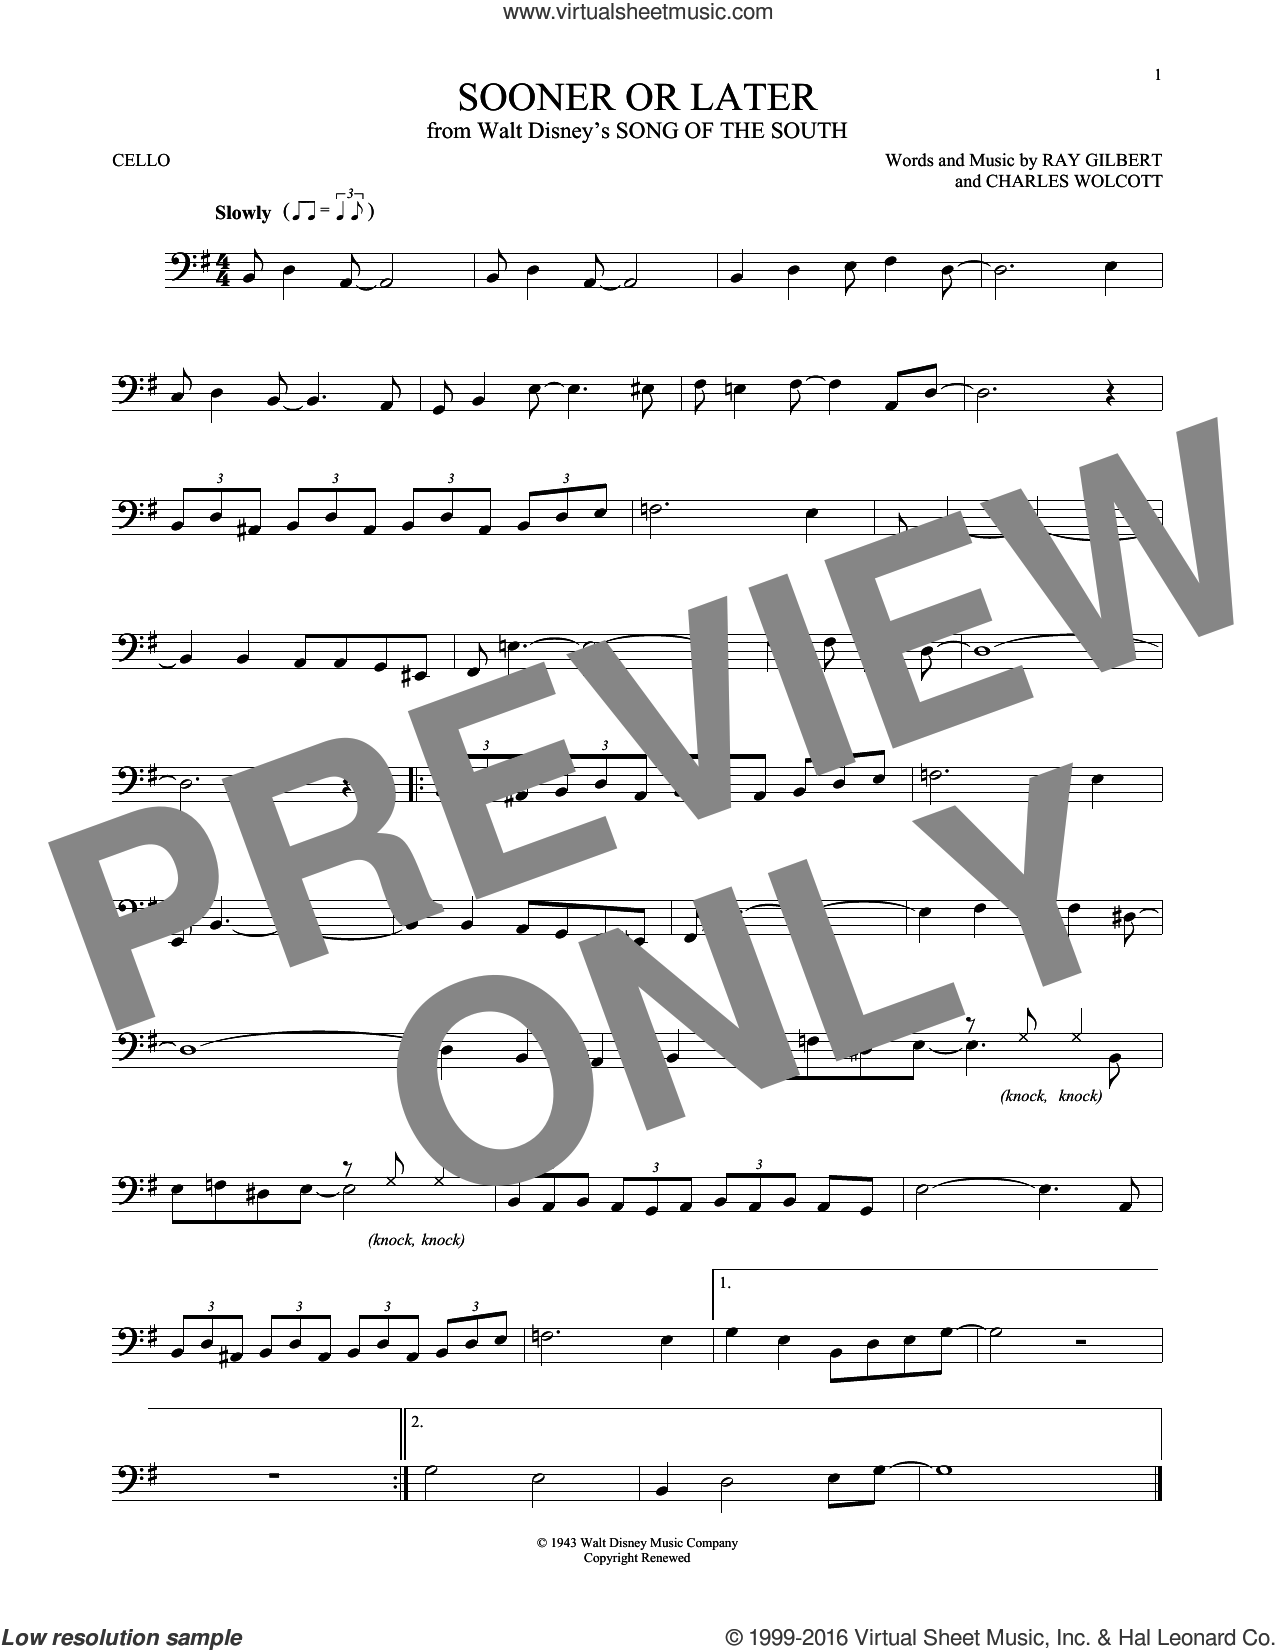 Sooner Or Later sheet music for cello solo by Ray Gilbert, Charles Wolcott and Ray Gilbert & Charles Wolcott, intermediate skill level